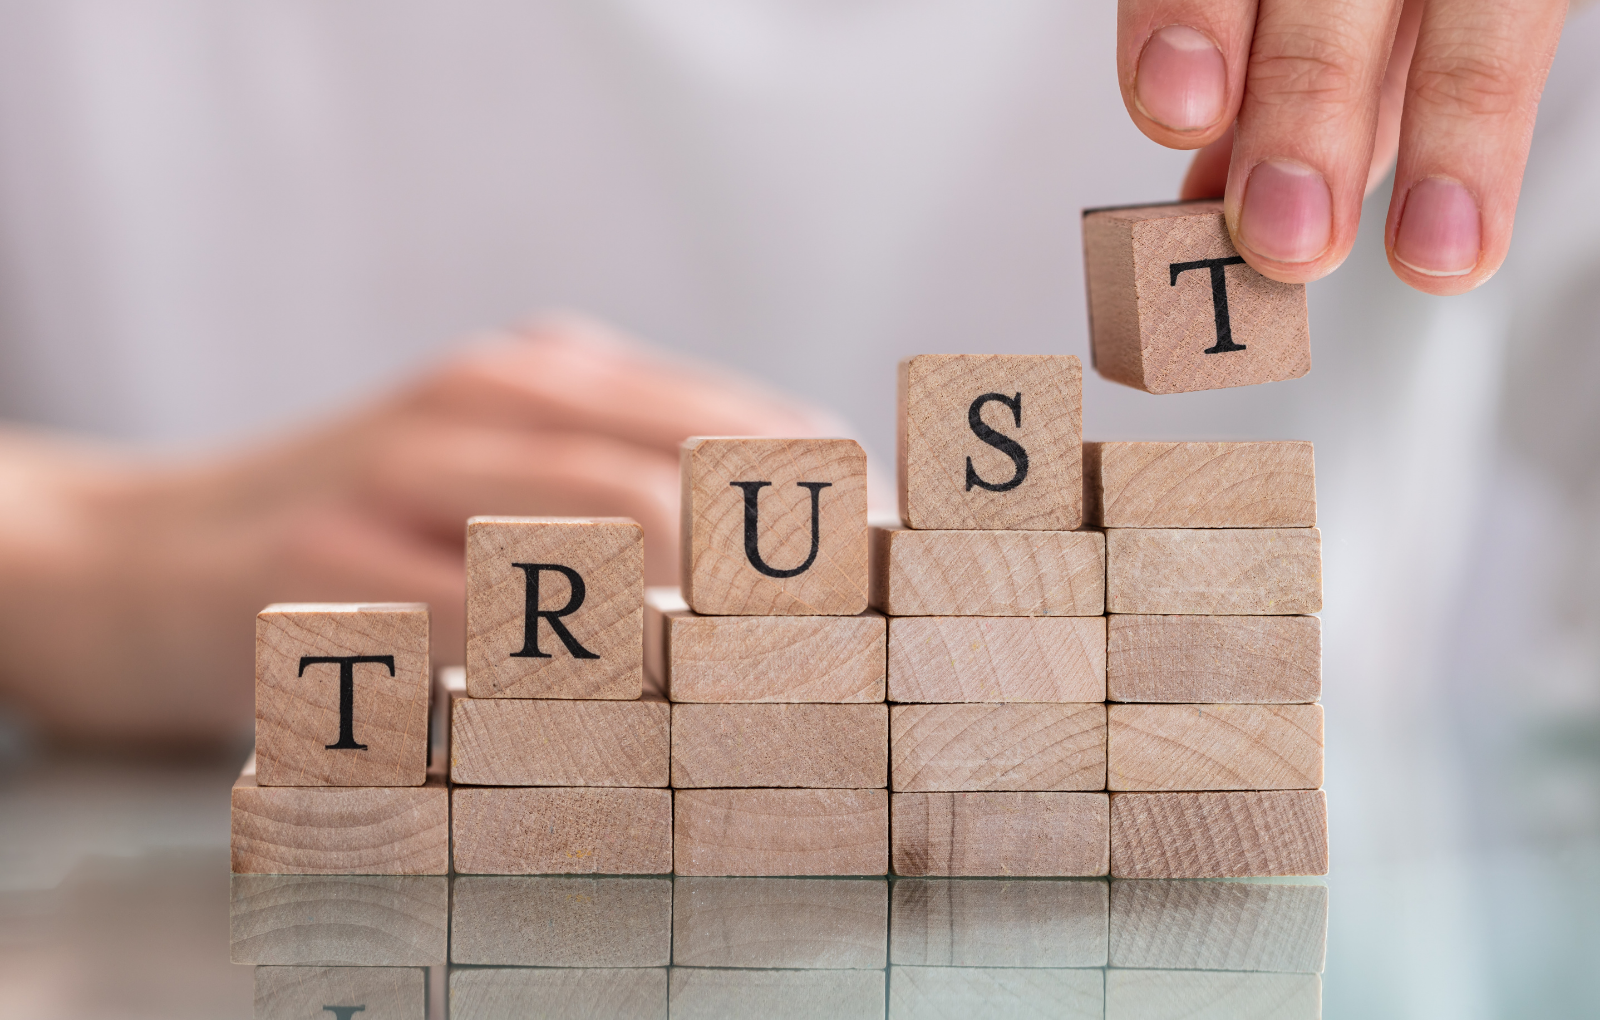 Building Trust Through Account Based Selling (ABS)